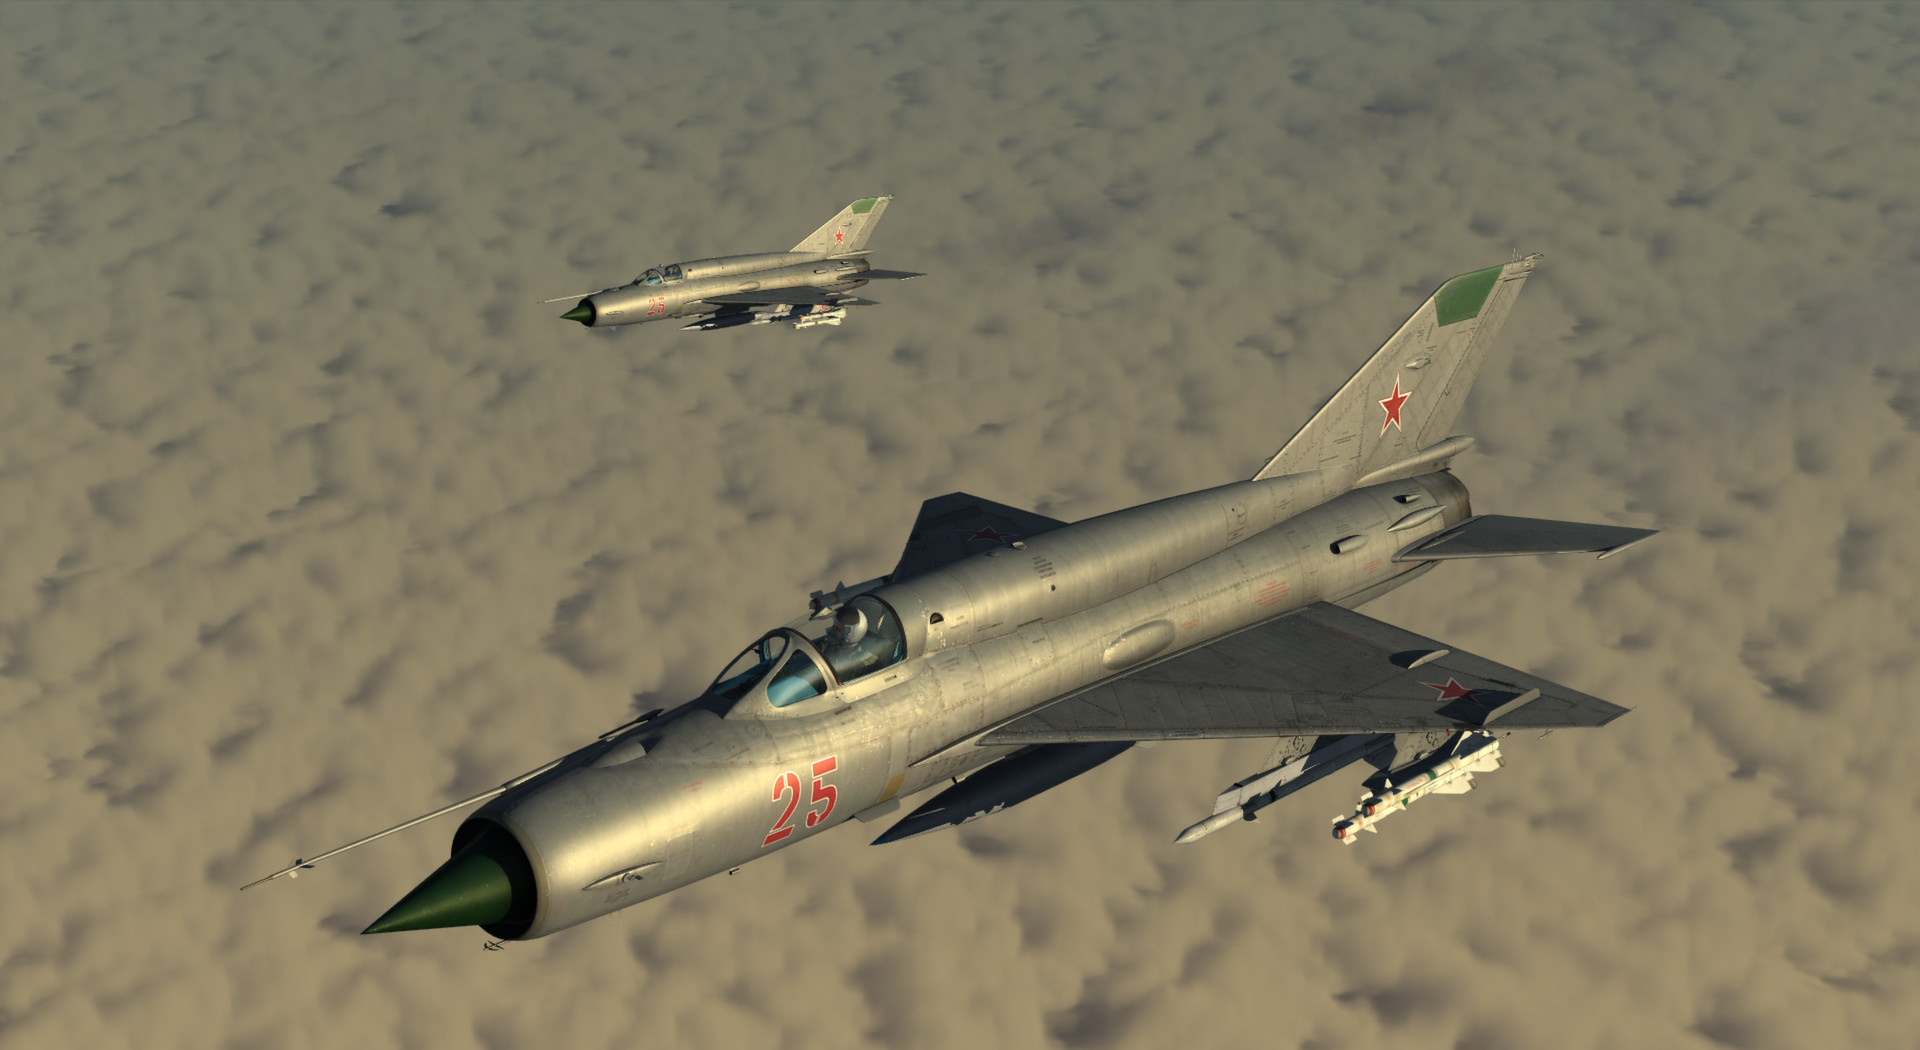 dcs world mirage 2000 torrent